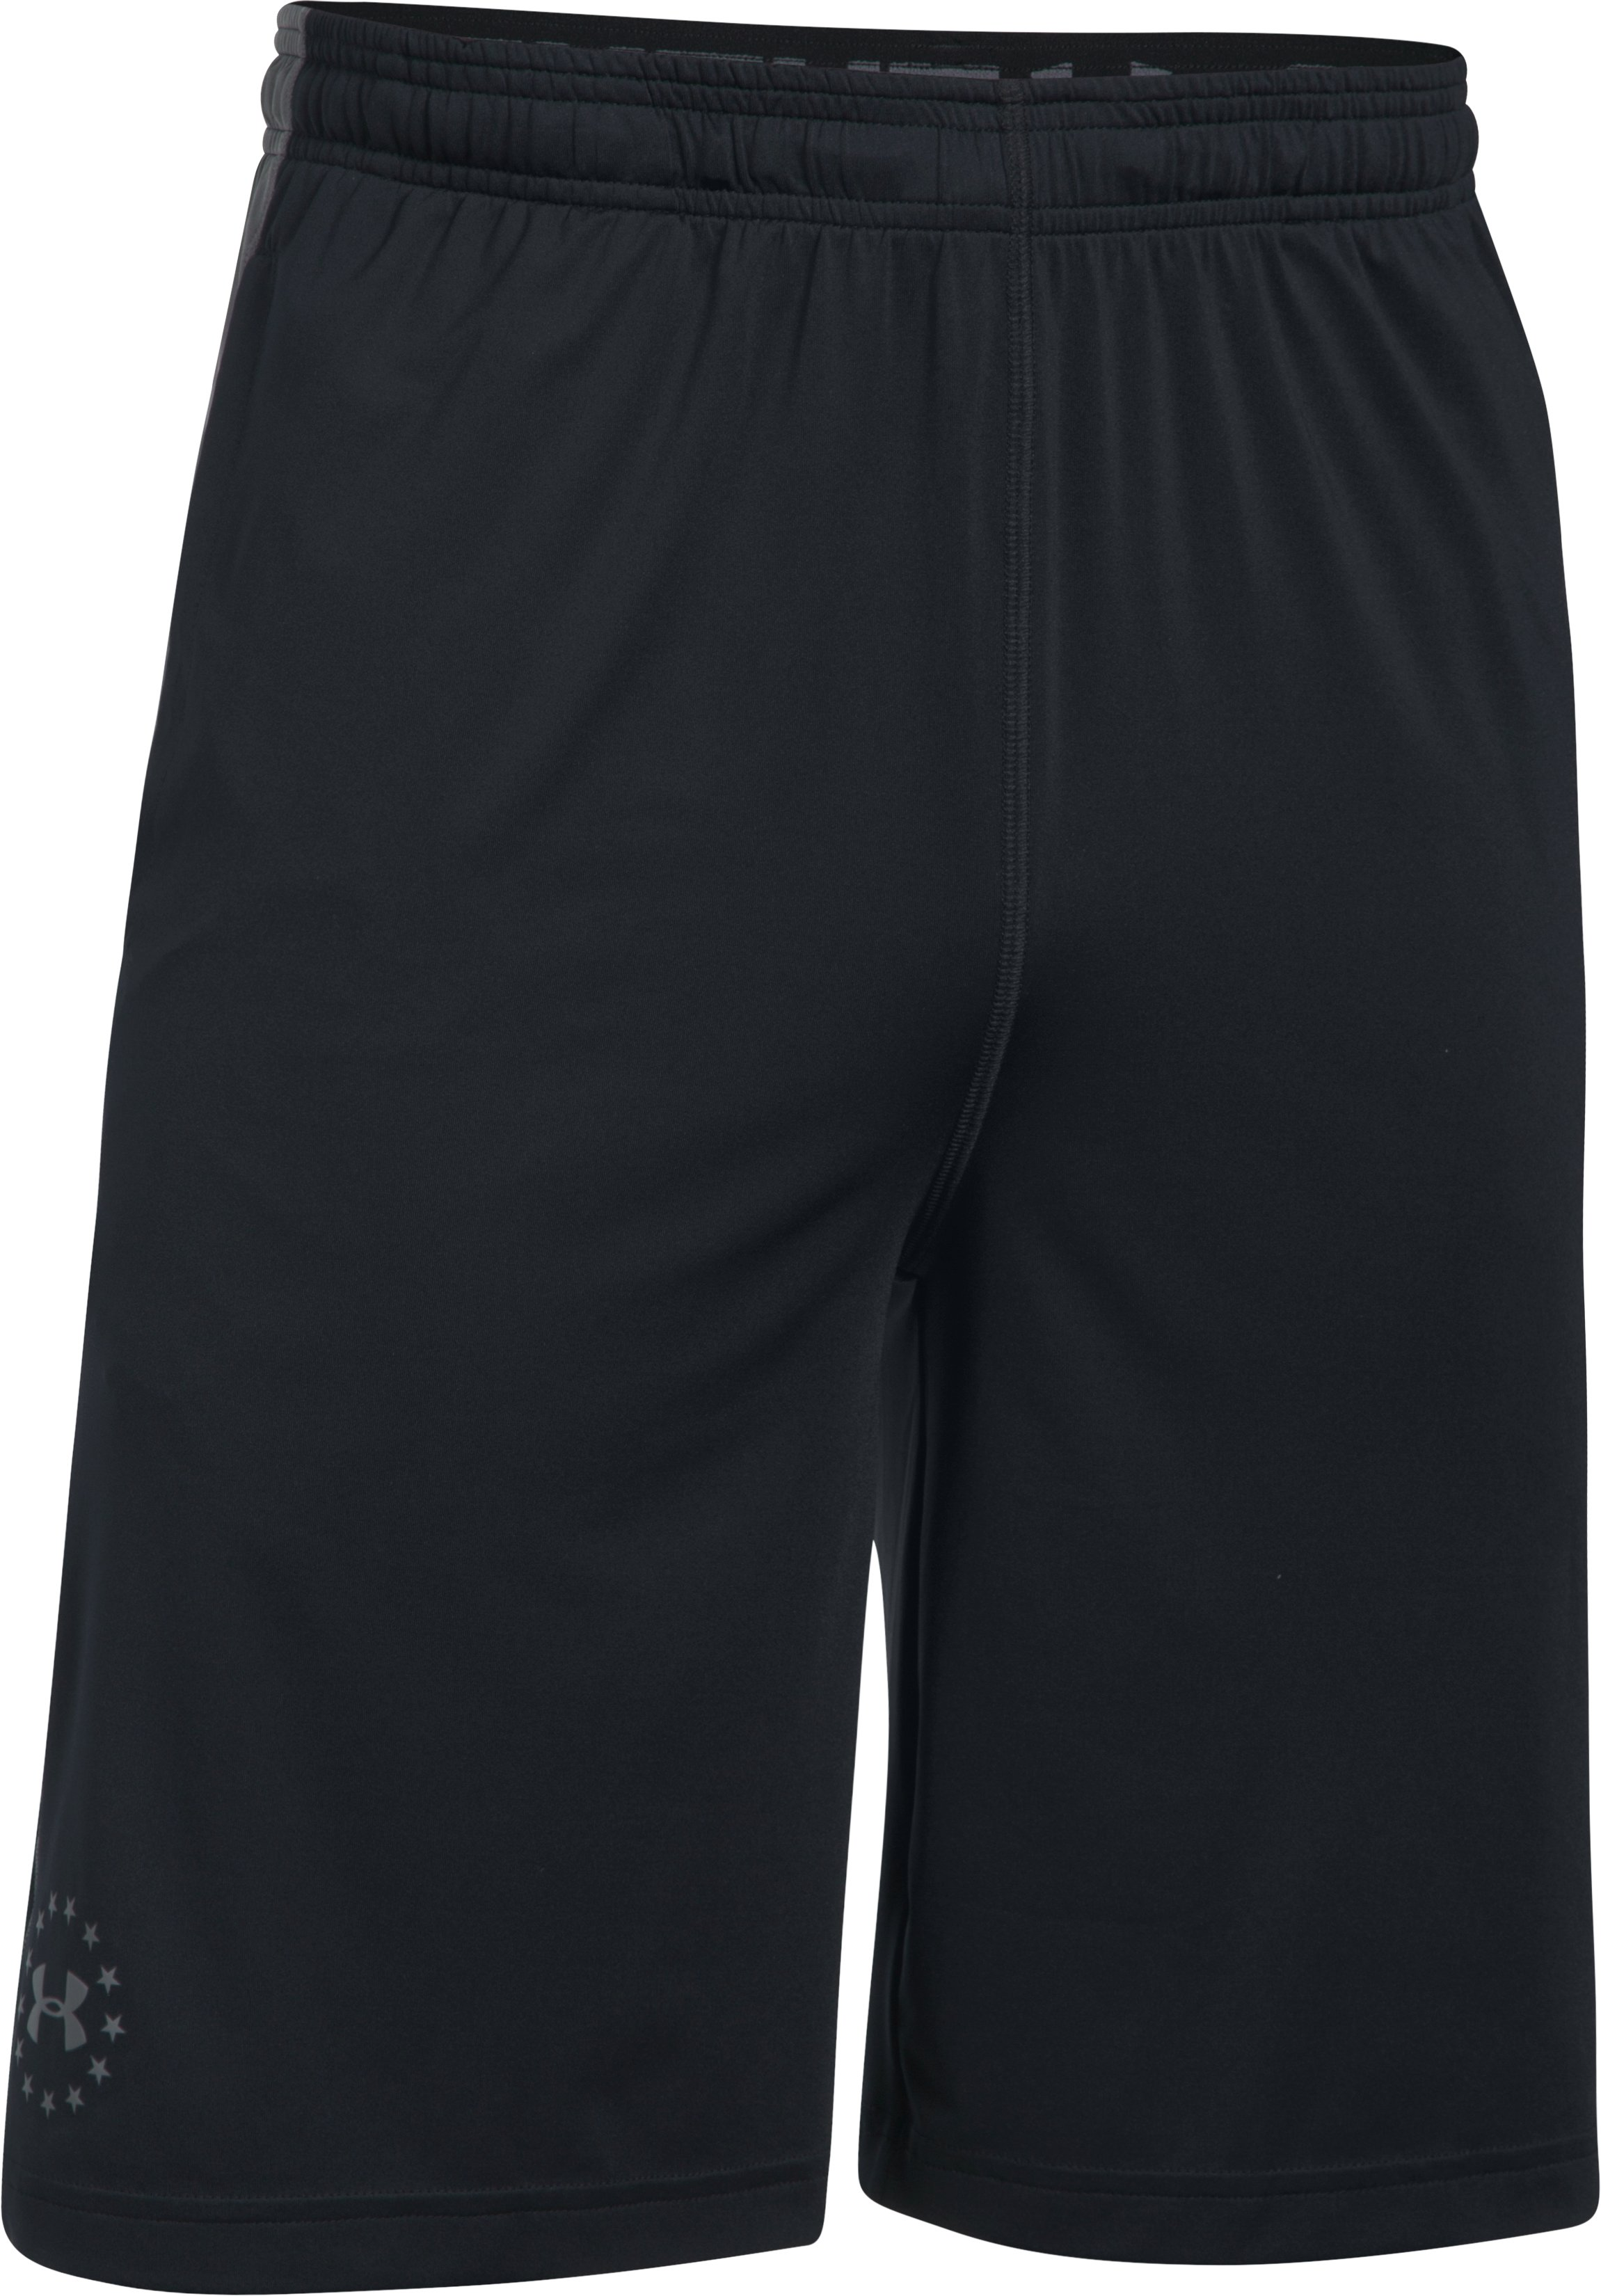 Men's UA Freedom Raid Shorts, Black , undefined